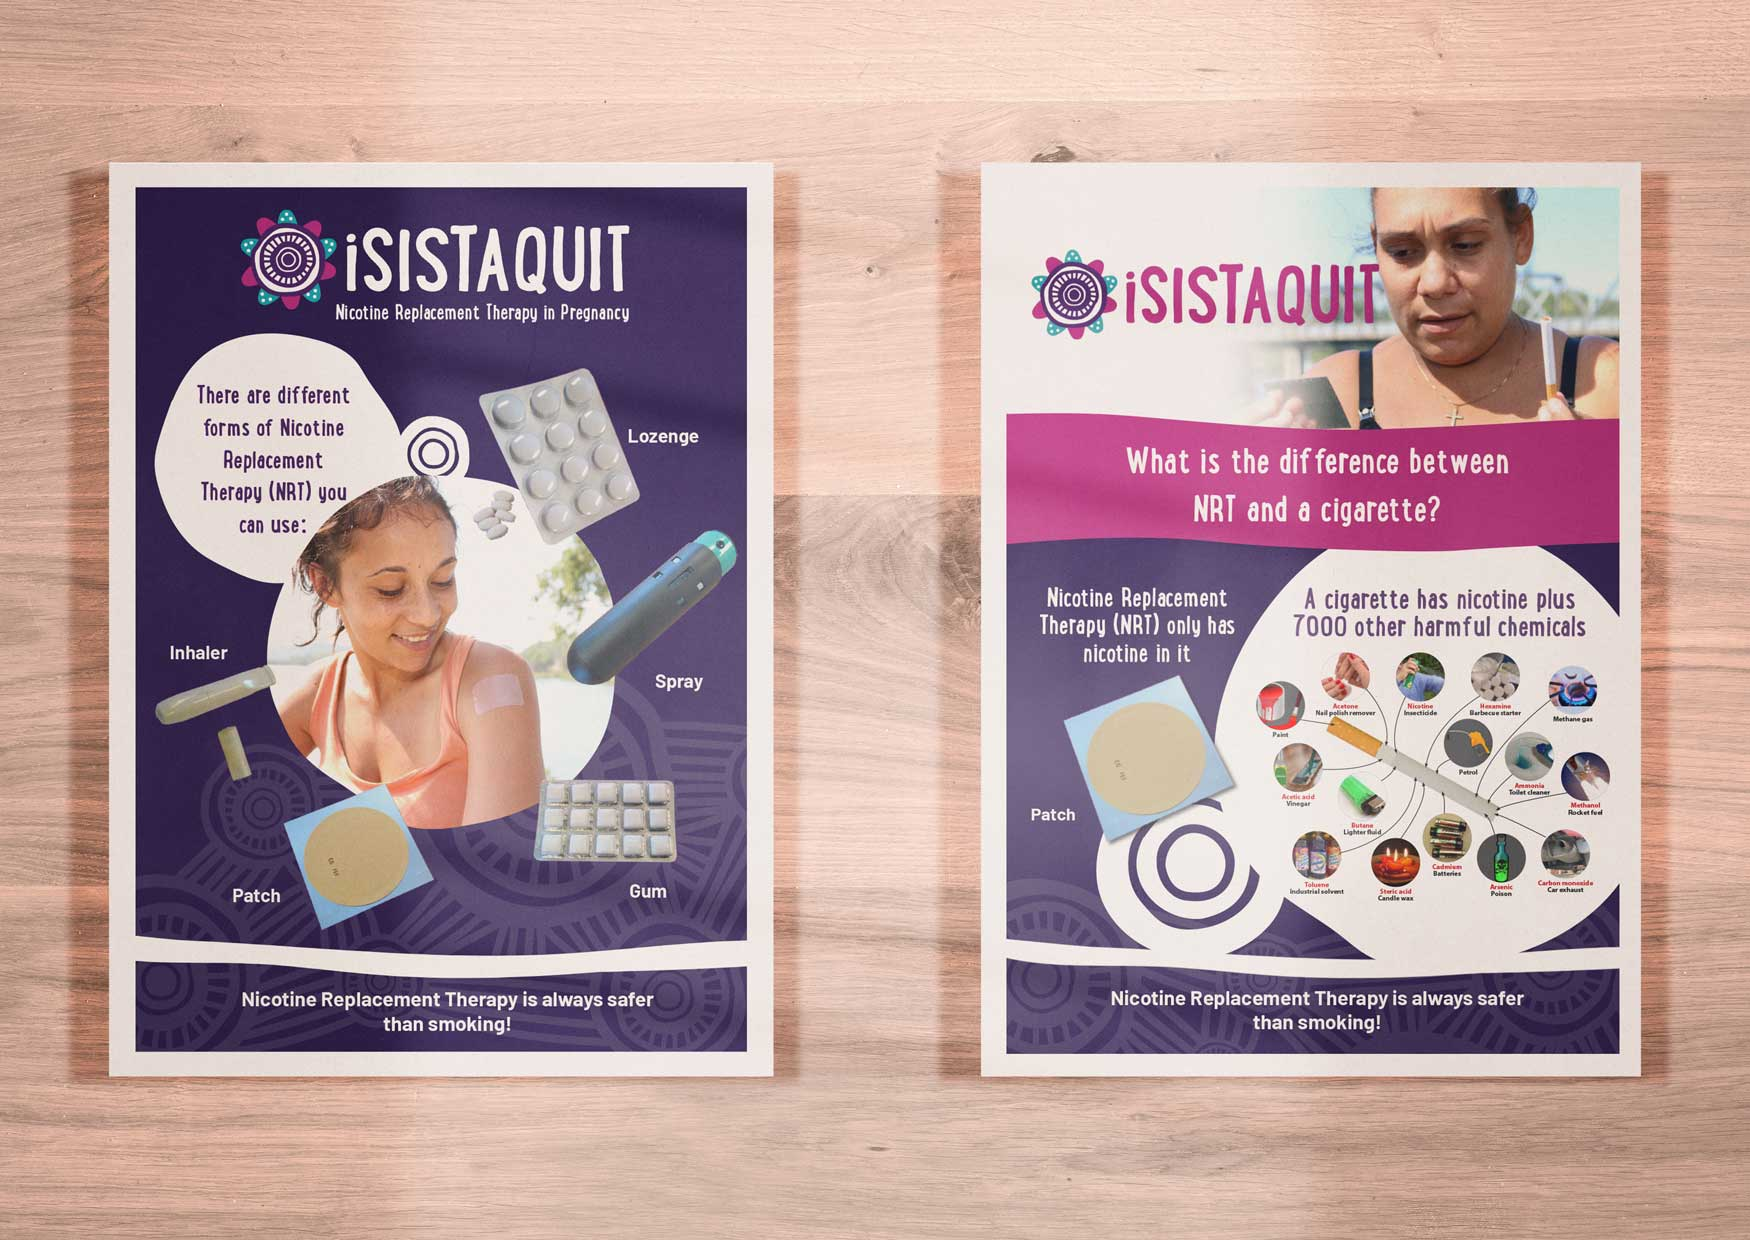 iSISTAQUIT 2021 posters